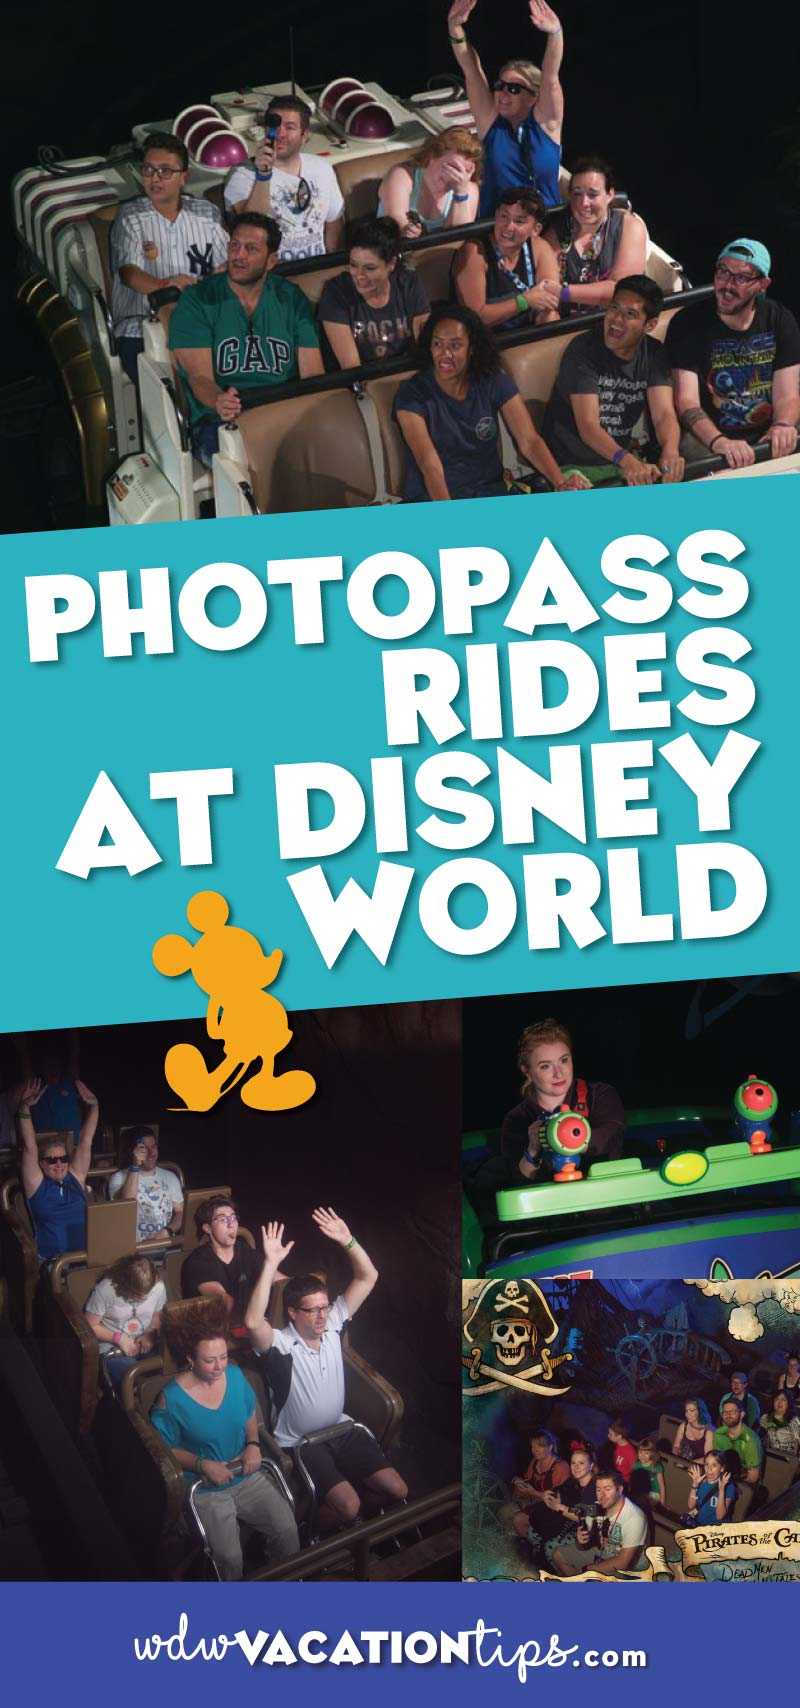 whether you have a Memory Maker package, are an Annual Passholder, or are willing to pay for a picture or two you won't want to miss these attractionswith on ride photos at Disney World.